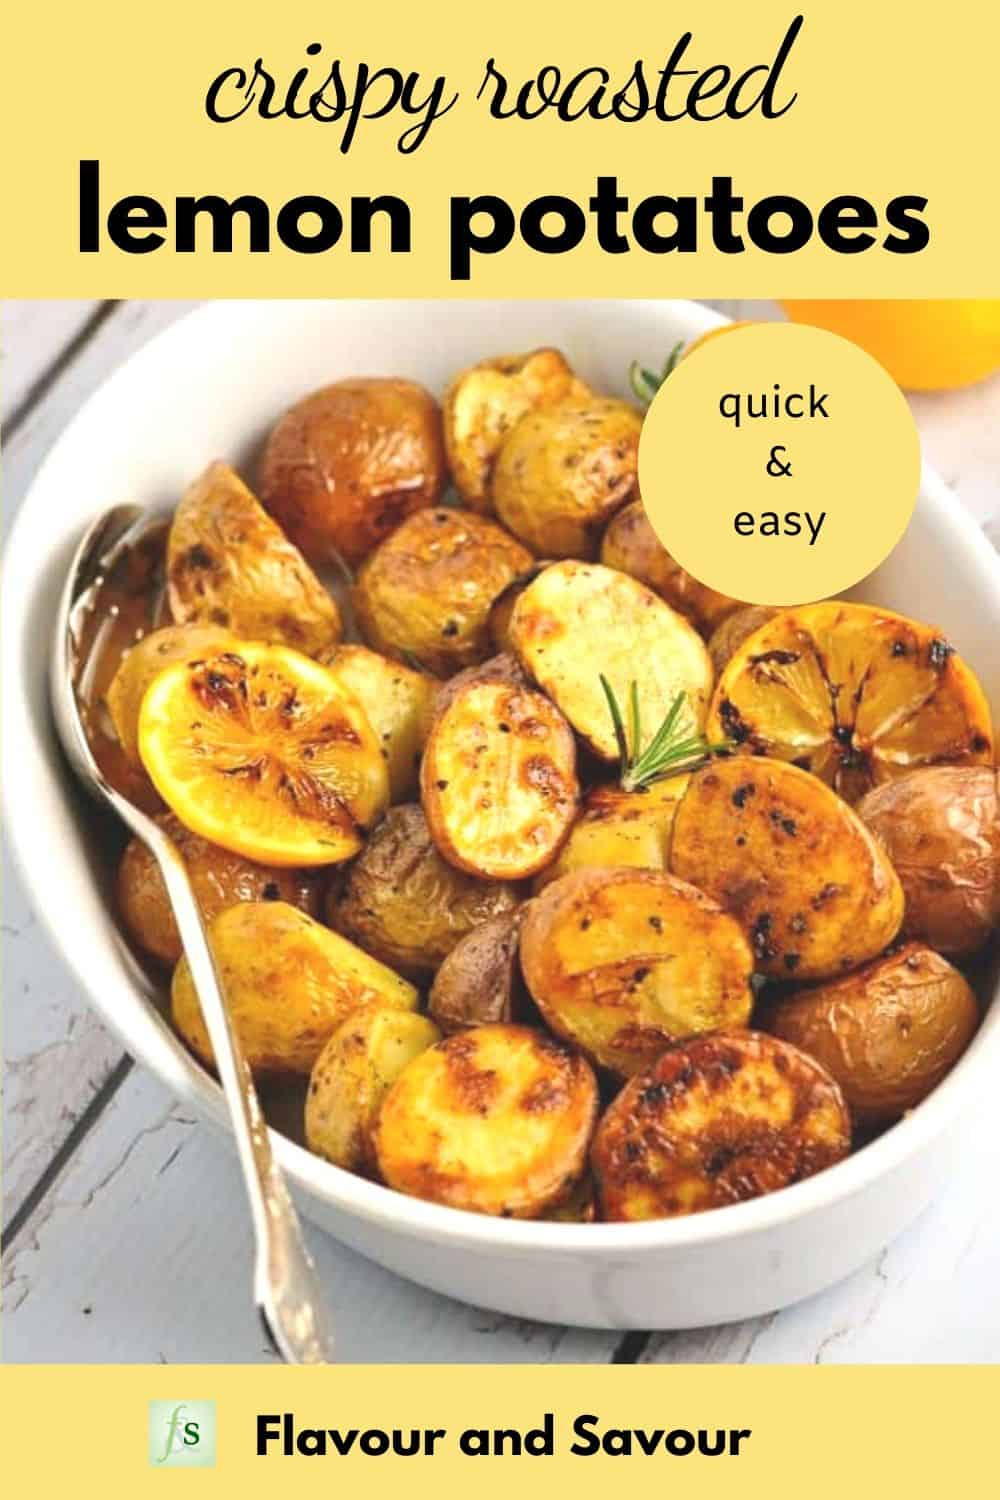 Graphic for Crispy Lemon Oven Roasted Potatoes with text overlay